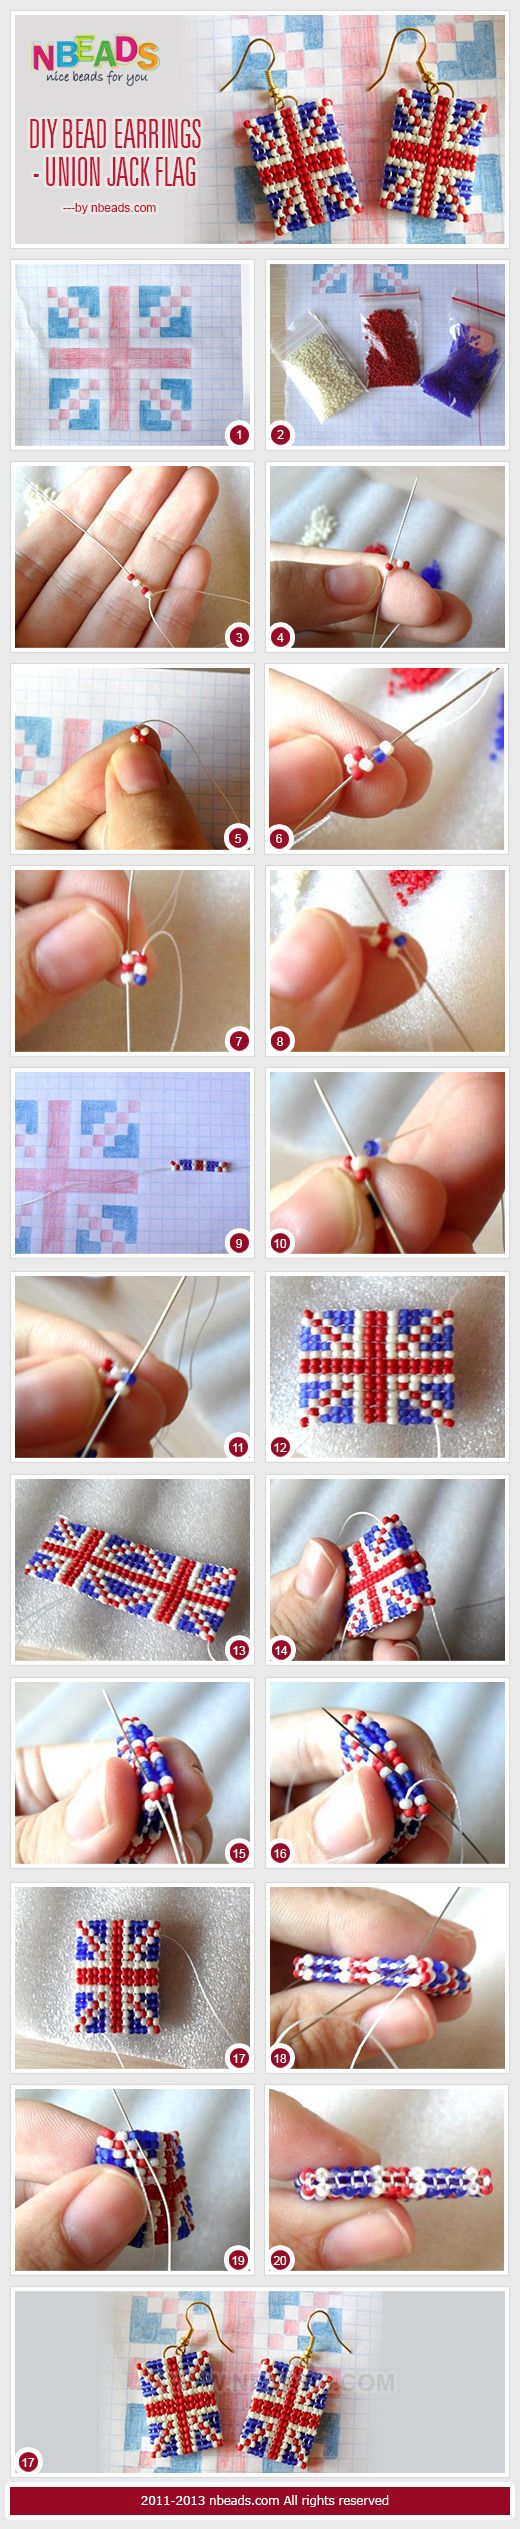 Diy bead earrings - union jack flag.  Make flag earrings of your nation, or string them as a necklace.  Looks like it's done with Herringbone stitch.  Maybe do in Square stitch or on a loom?